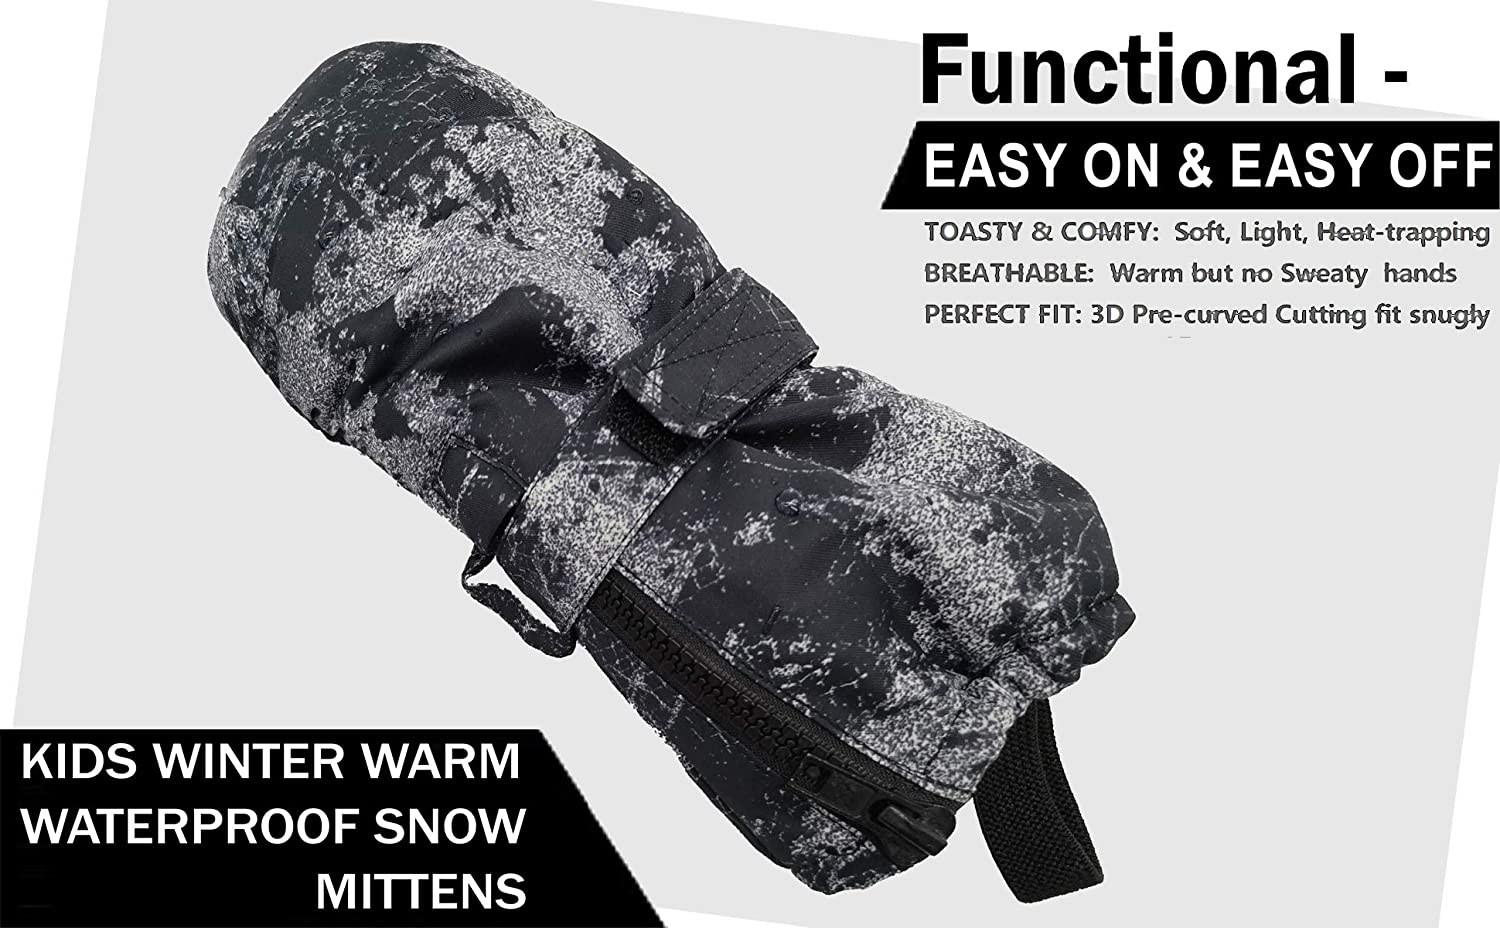 Slim Fit for Skiing Kids Winter Ski Snow Mittens Waterproof Warm with Zipper for Toddler Boy Girl